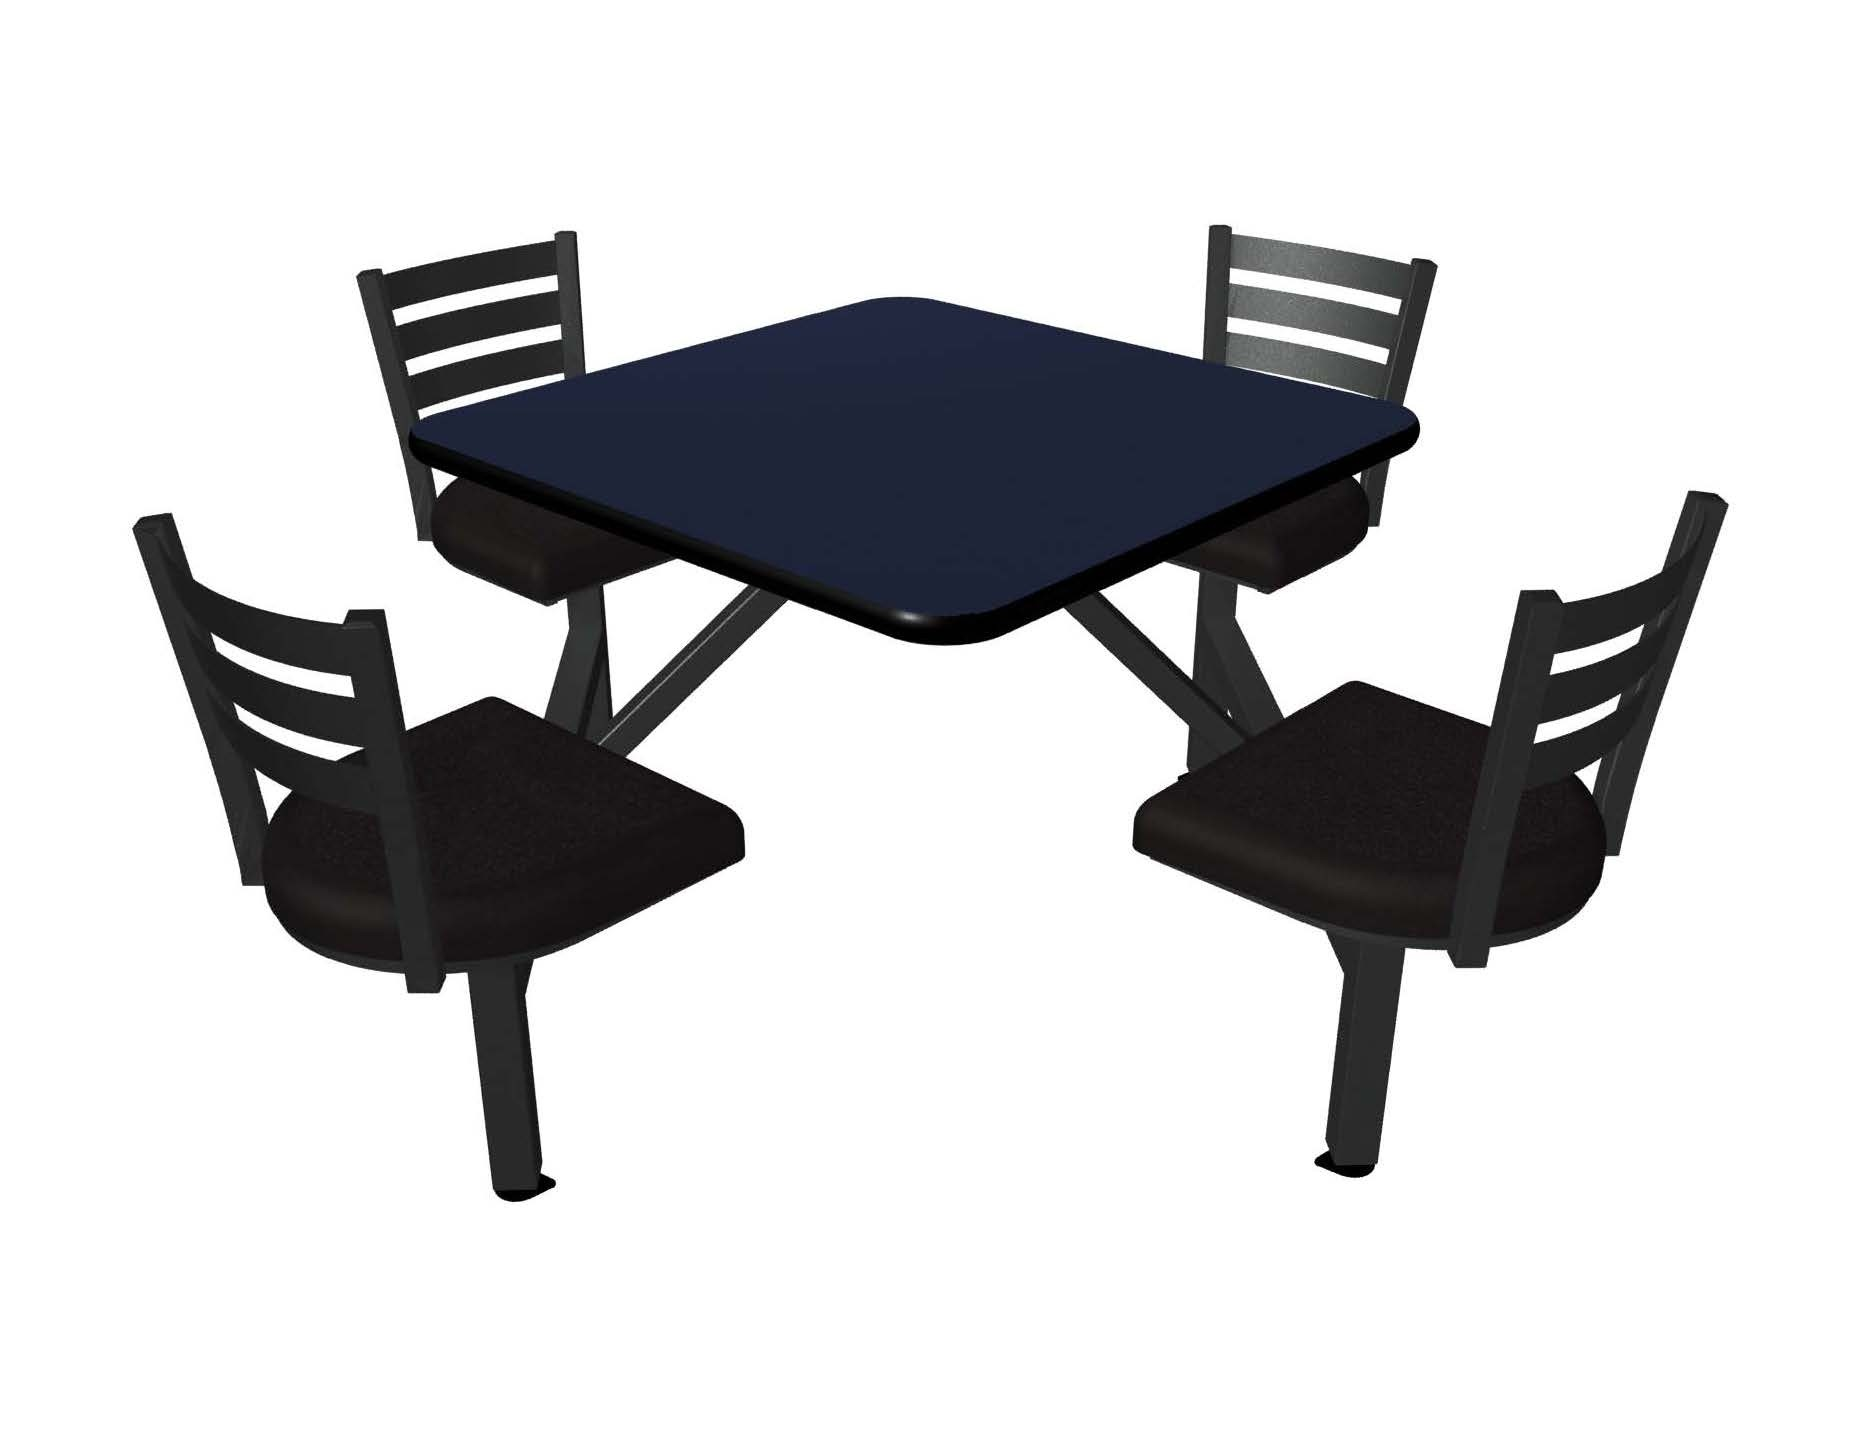 Atlantis laminate table top, Black vinyl edge, Quest chairhead with black vinyl seat